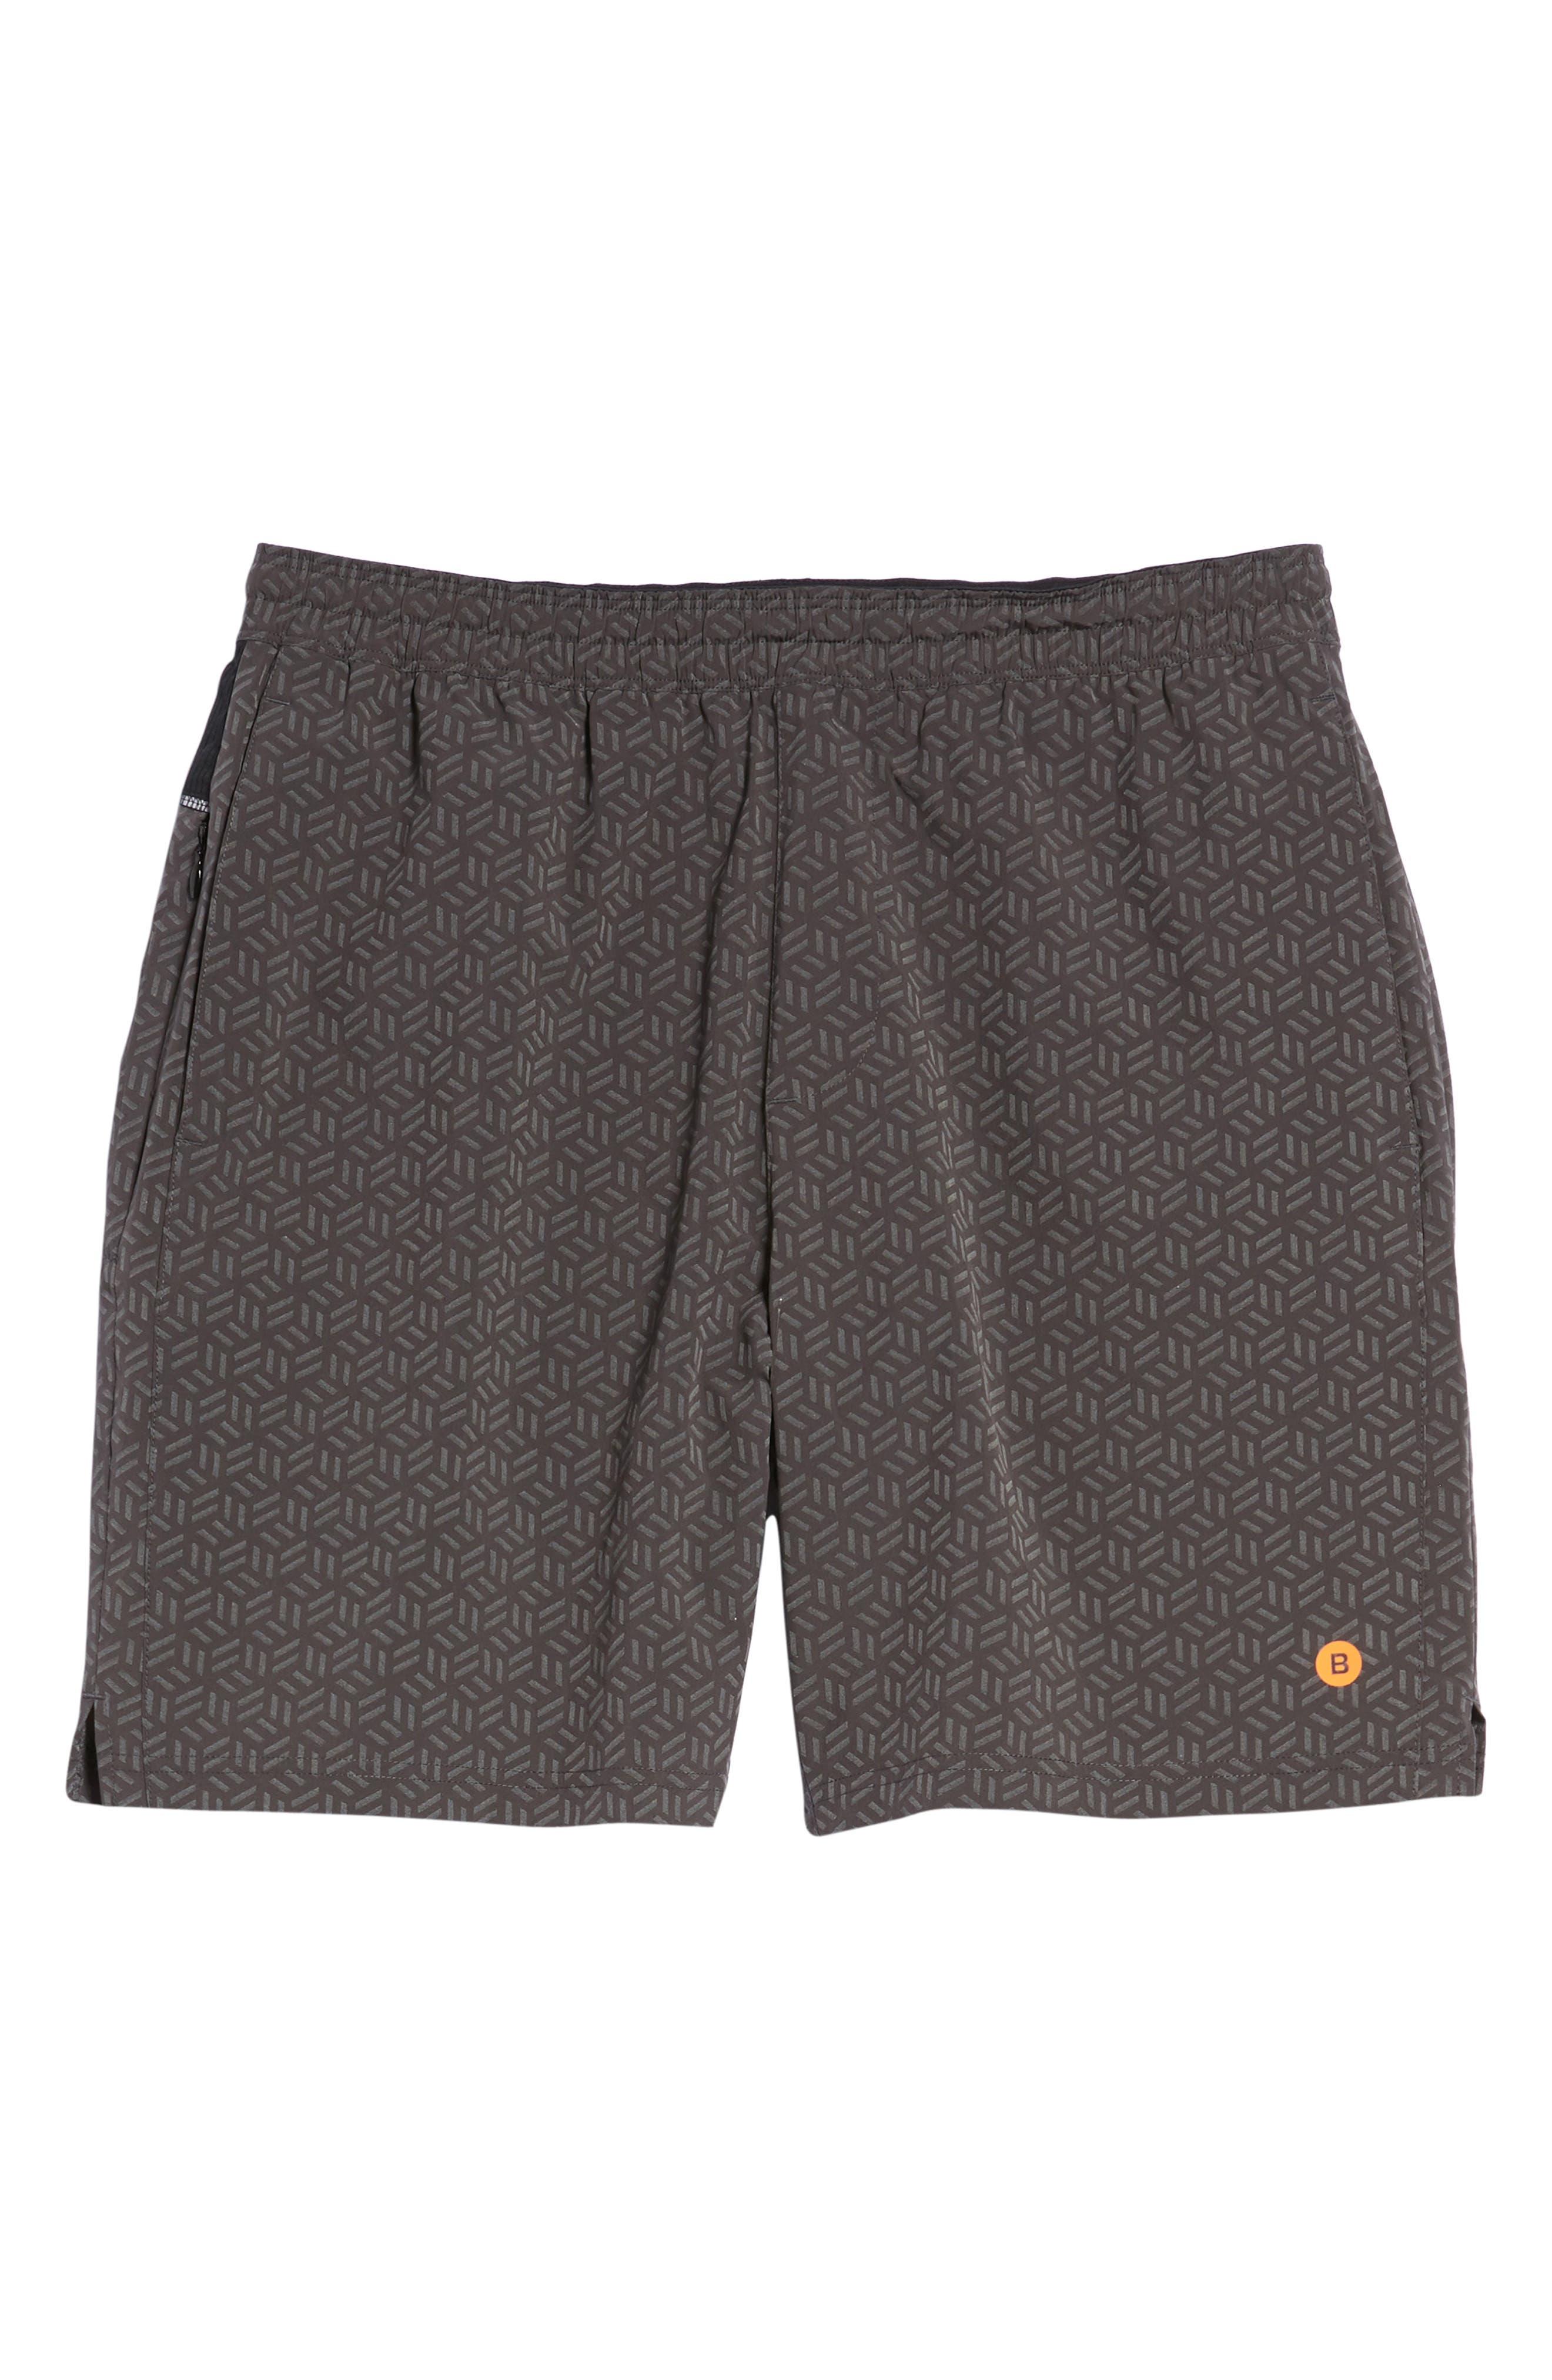 Stretch Shorts,                             Alternate thumbnail 6, color,                             Reflective Cube Geo